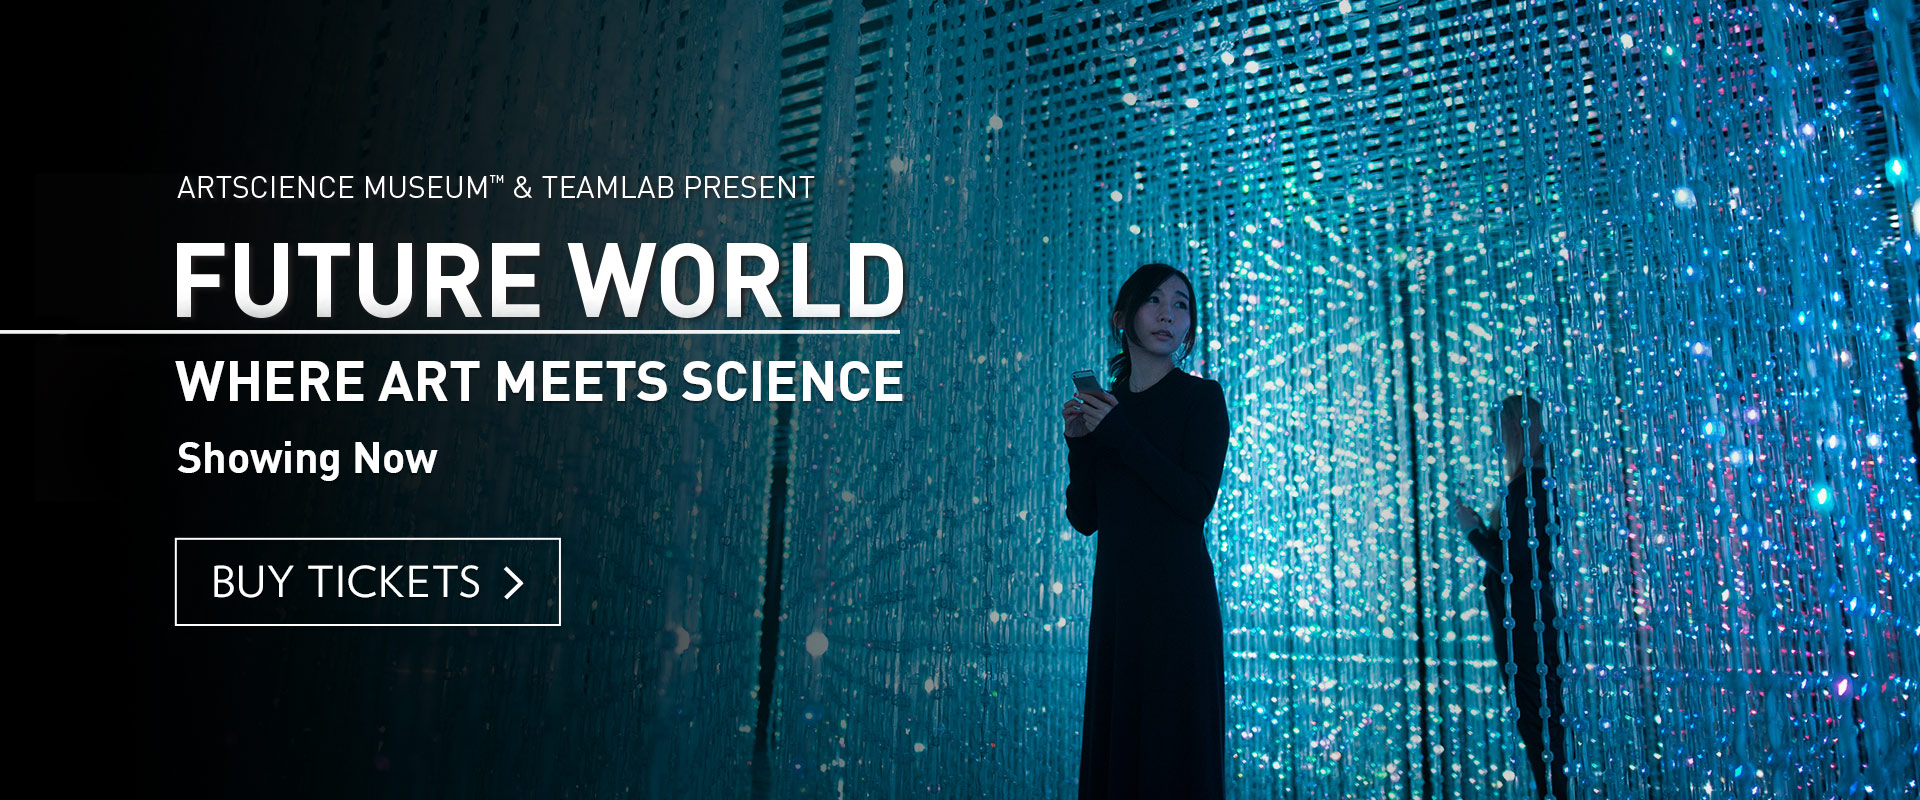 Future World - Where Art Meets Science